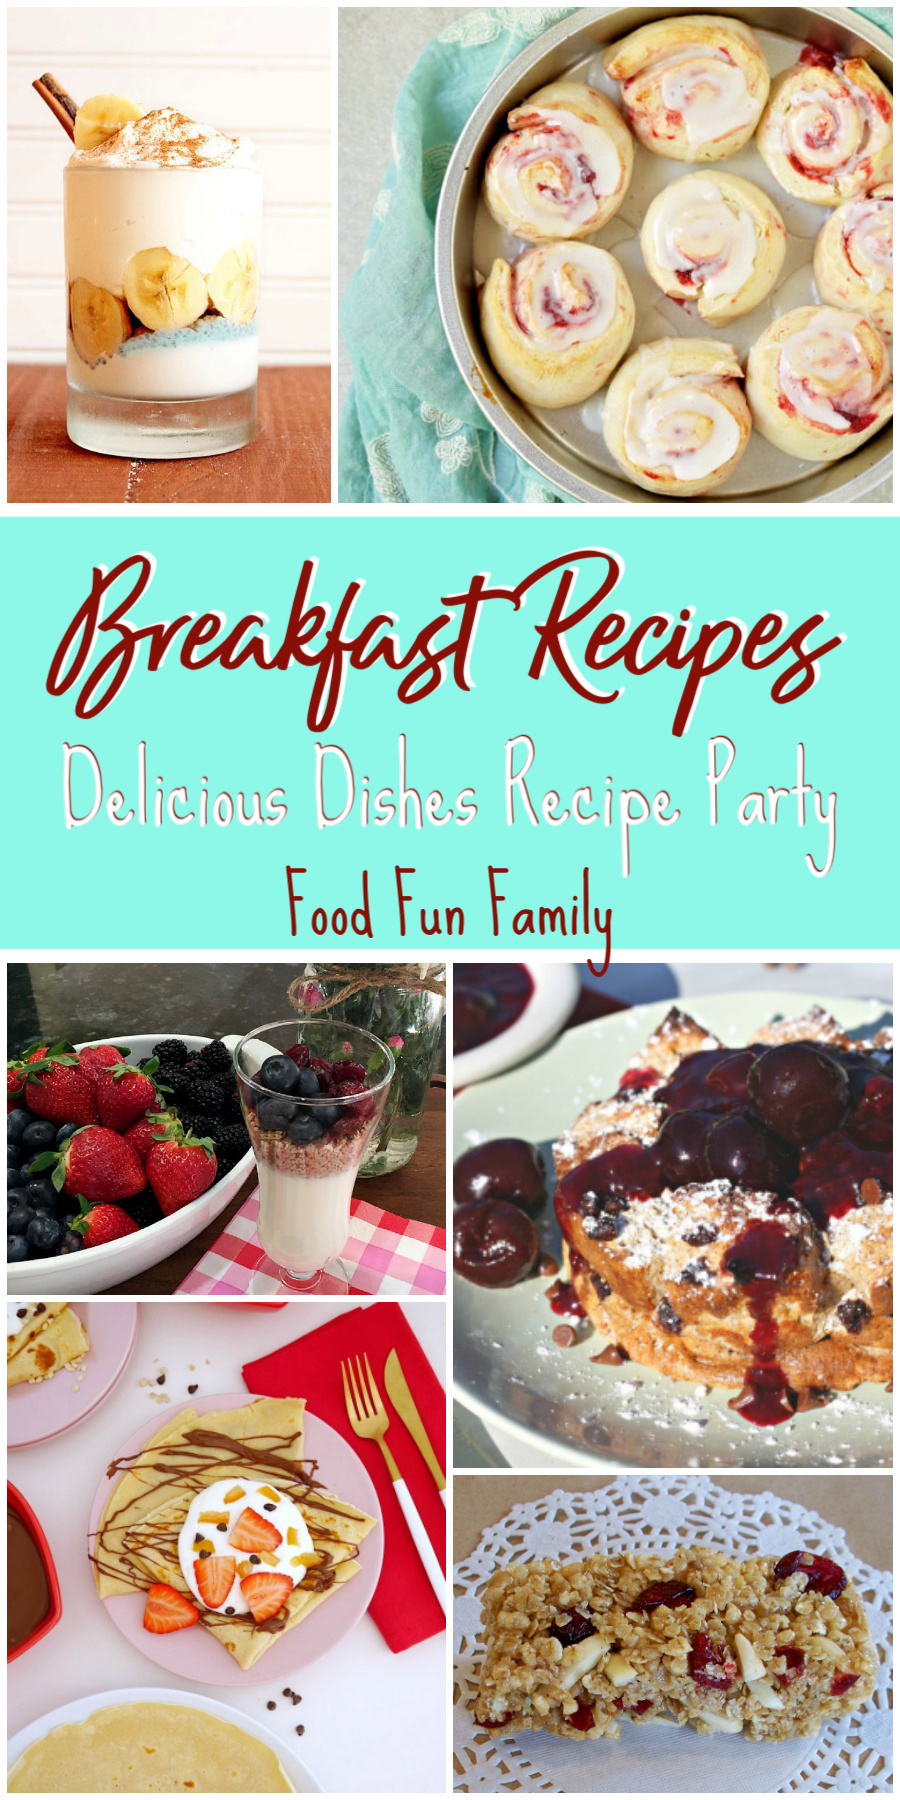 Tasty Breakfast recipes - a Delicious Dishes Recipe Party collection with Food Fun Family